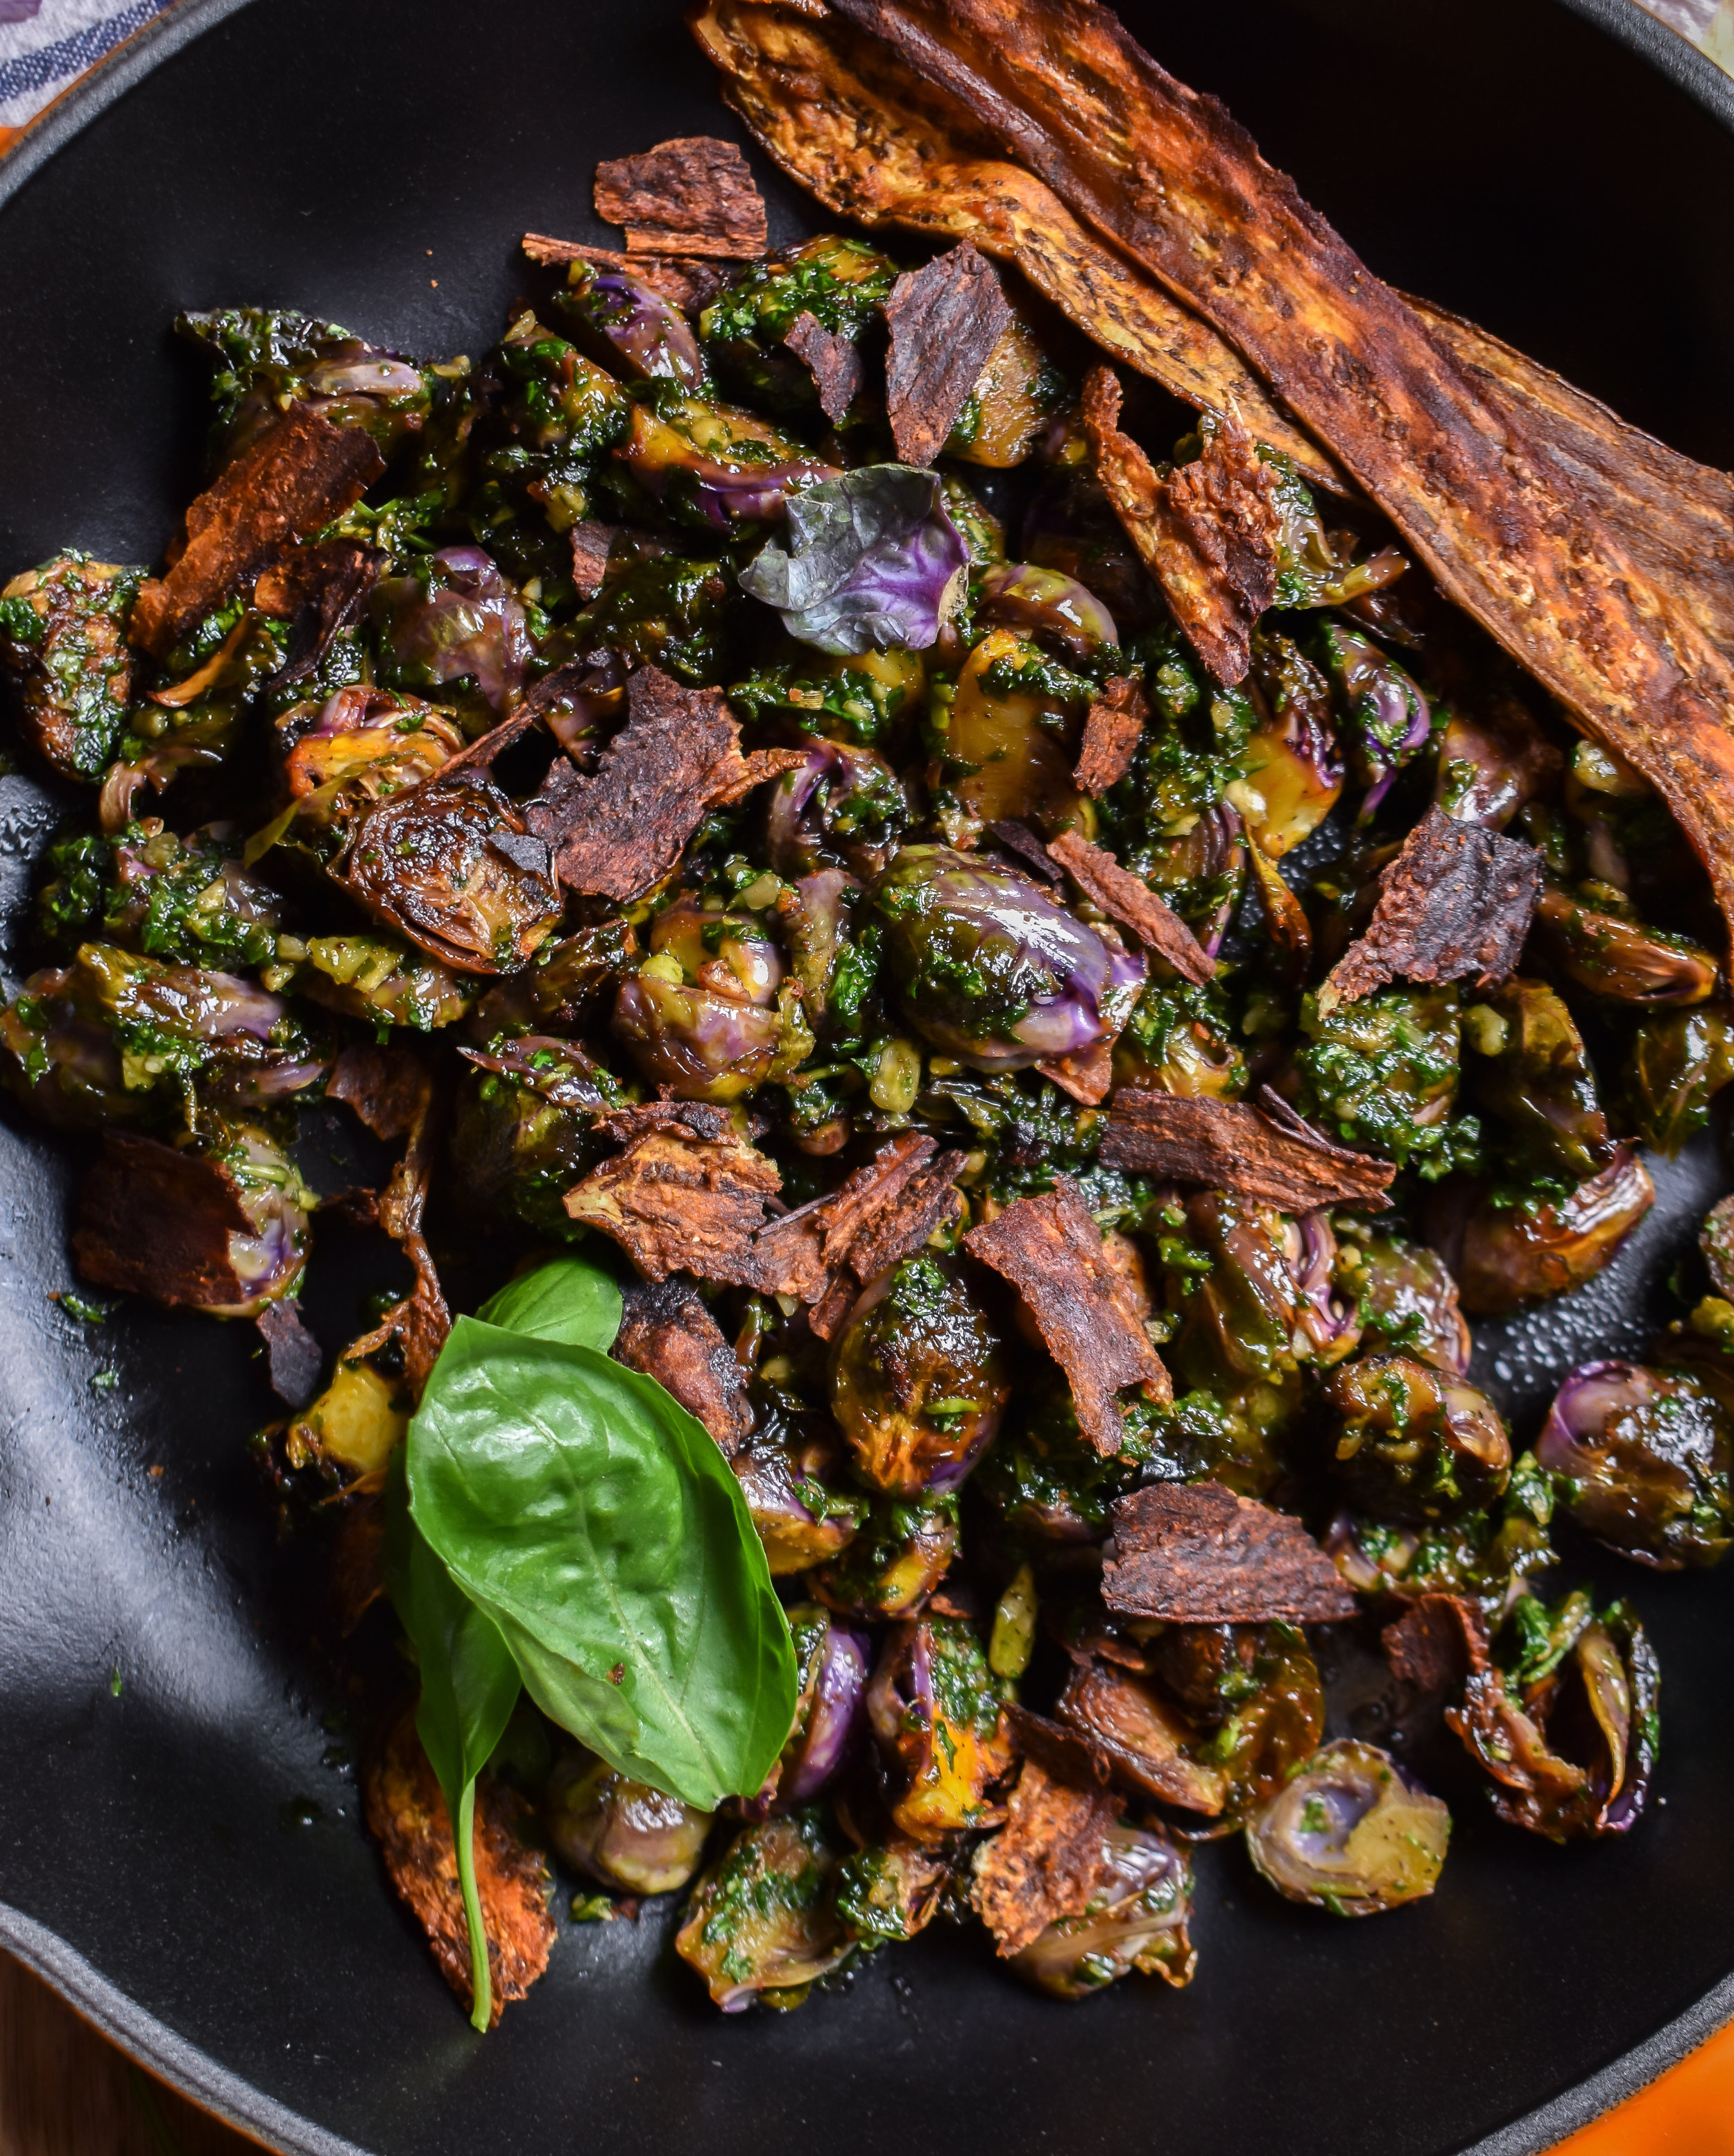 3. To finish, dice up eggplant bacon and mix with brusssel sprouts. Enjoy!